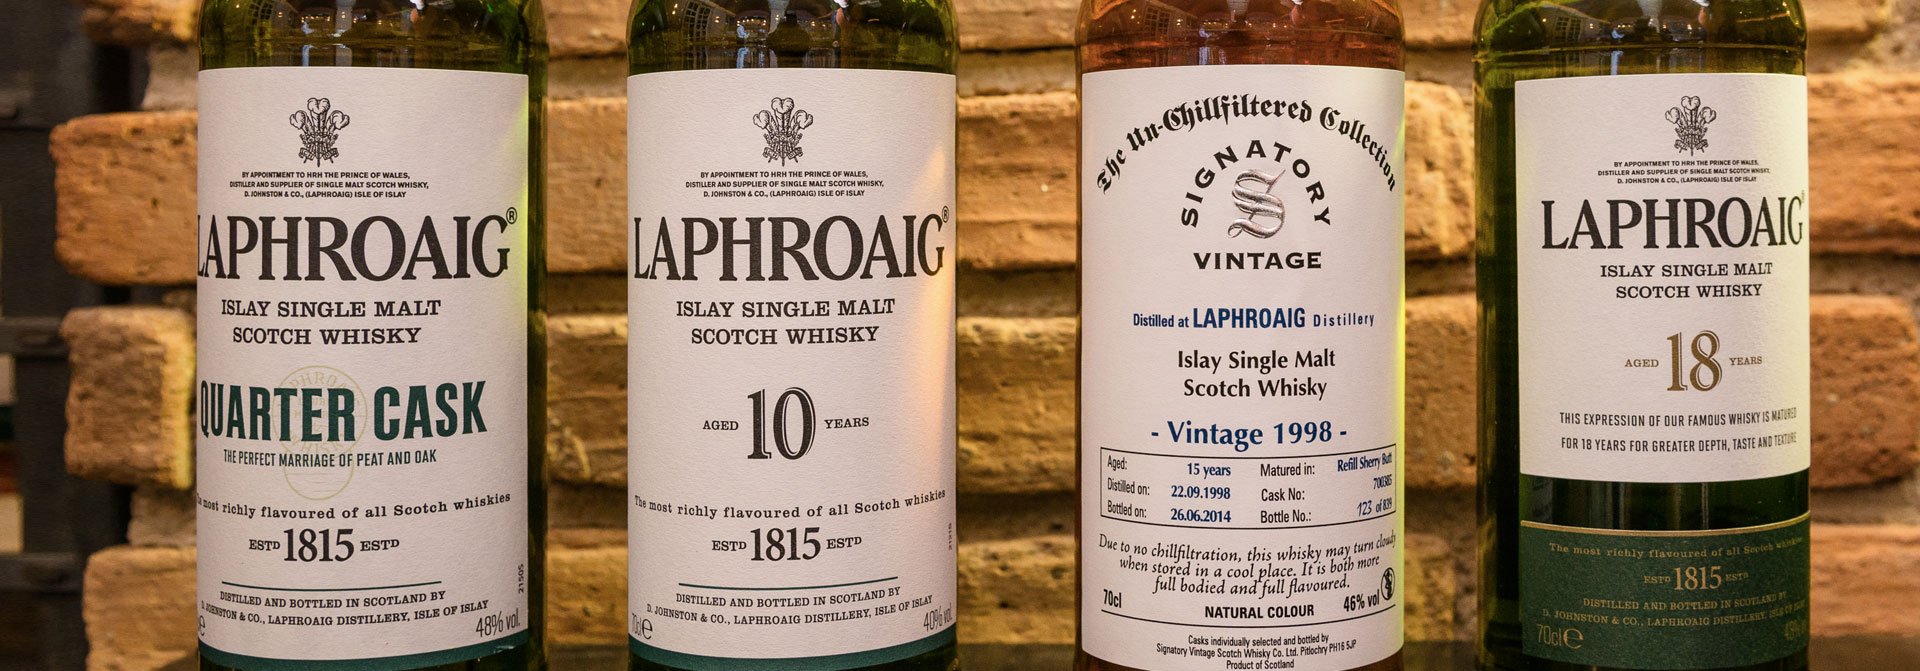 laphroaig whisky tasting the tasters club ουισκι